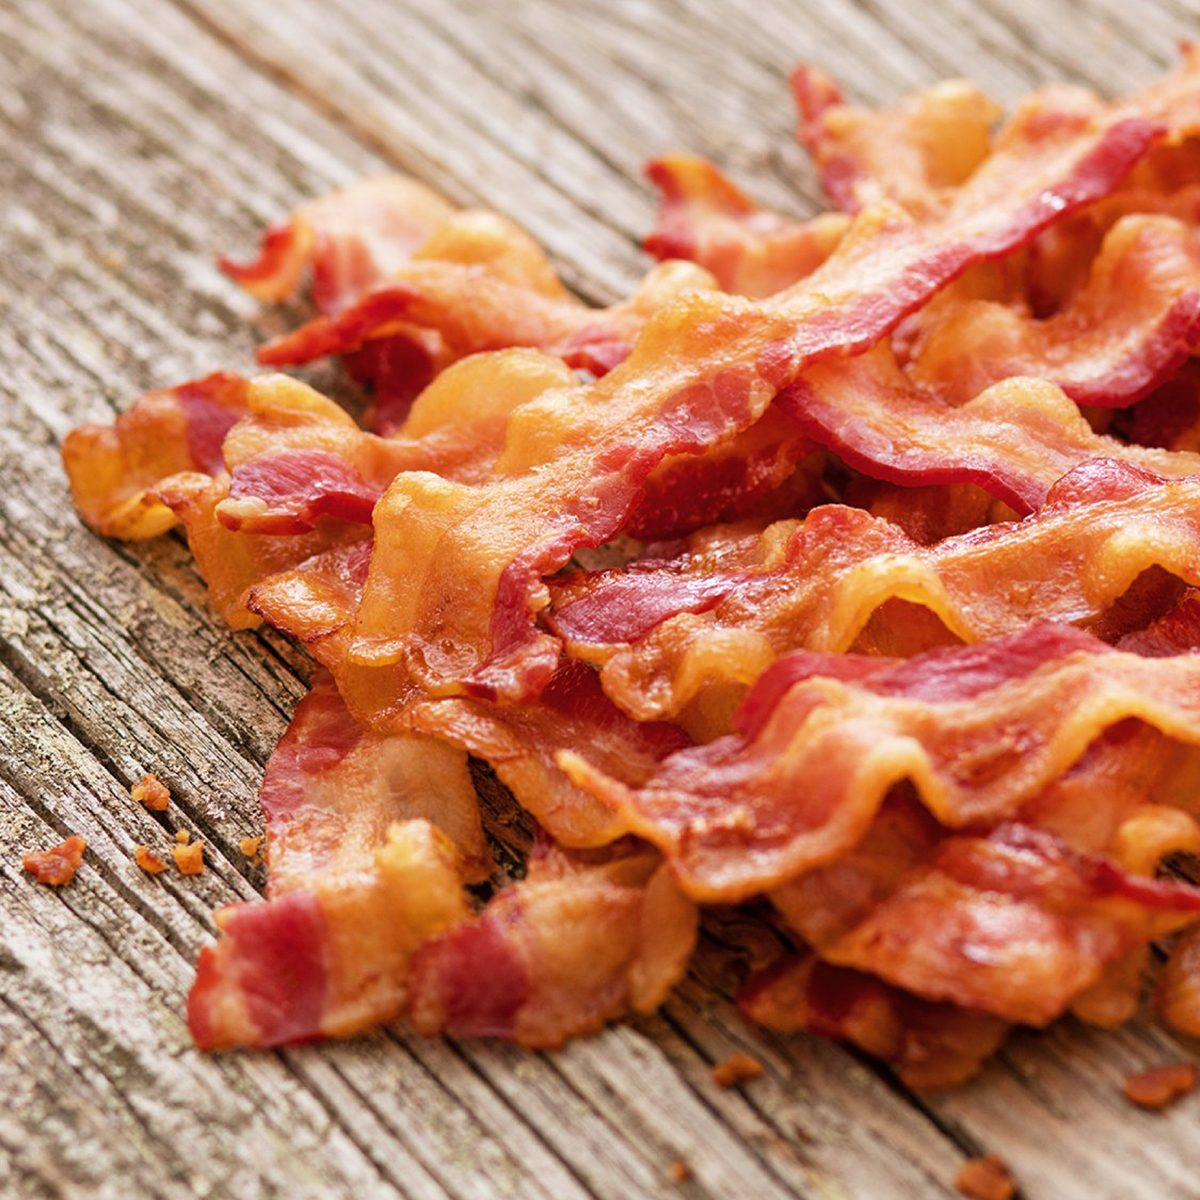 Best Bacon of Indiana